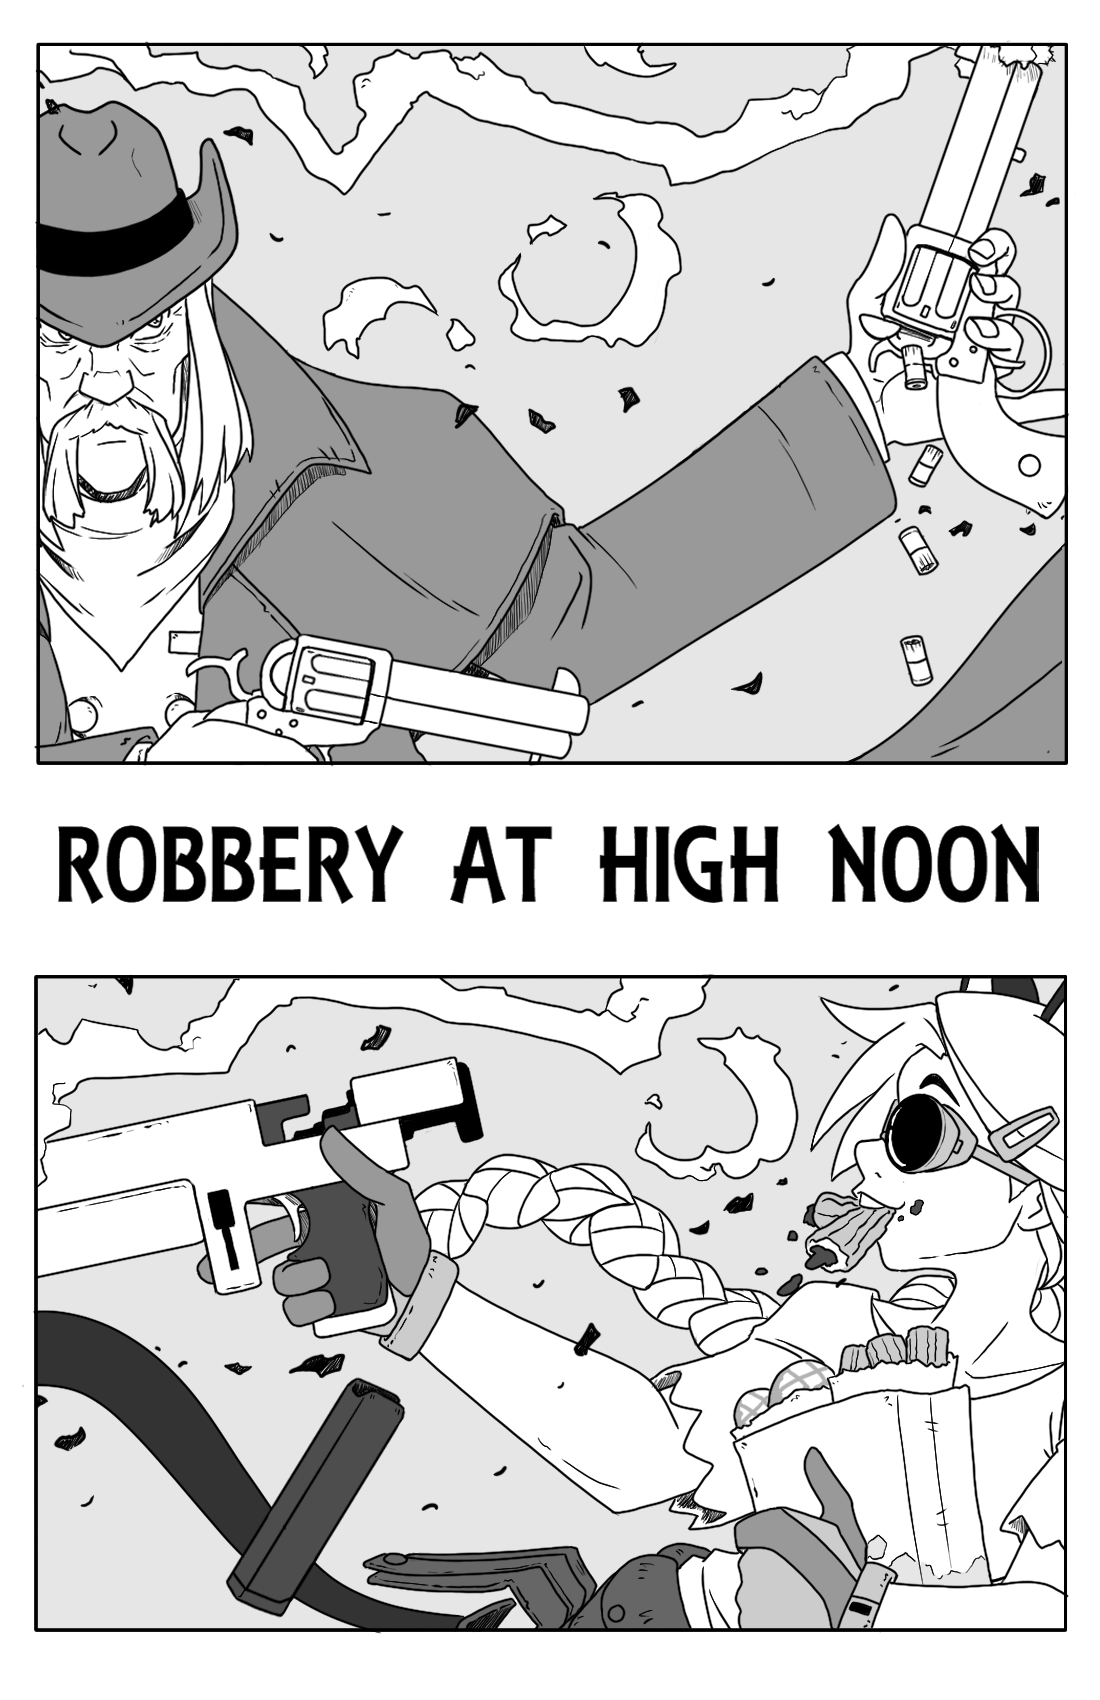 Robbery At High Noon title pg.